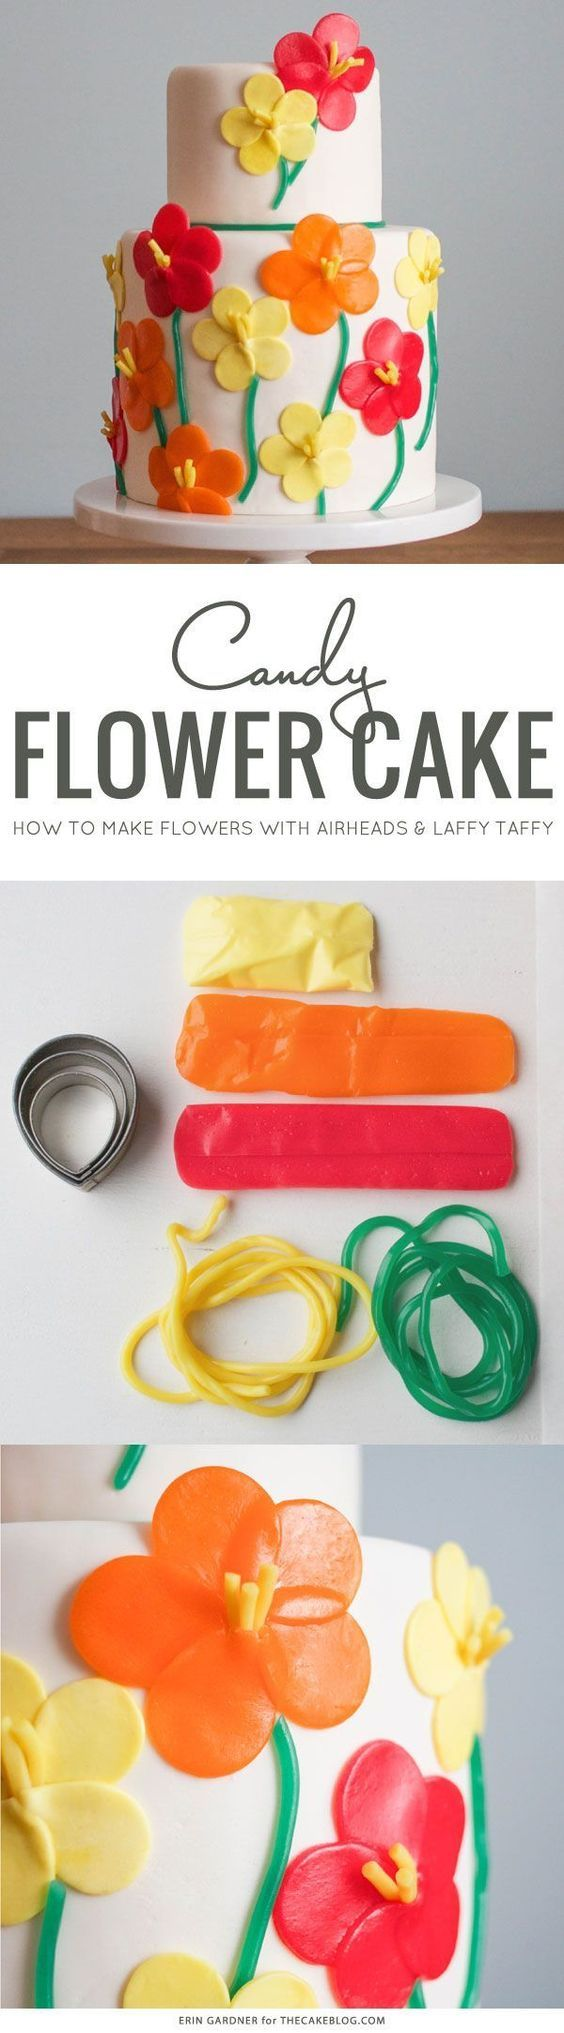 Learn how to make this candy flower cake using Airheads and Laffy Taffy candy | by Erin Gardner for TheCakeBlog.com.